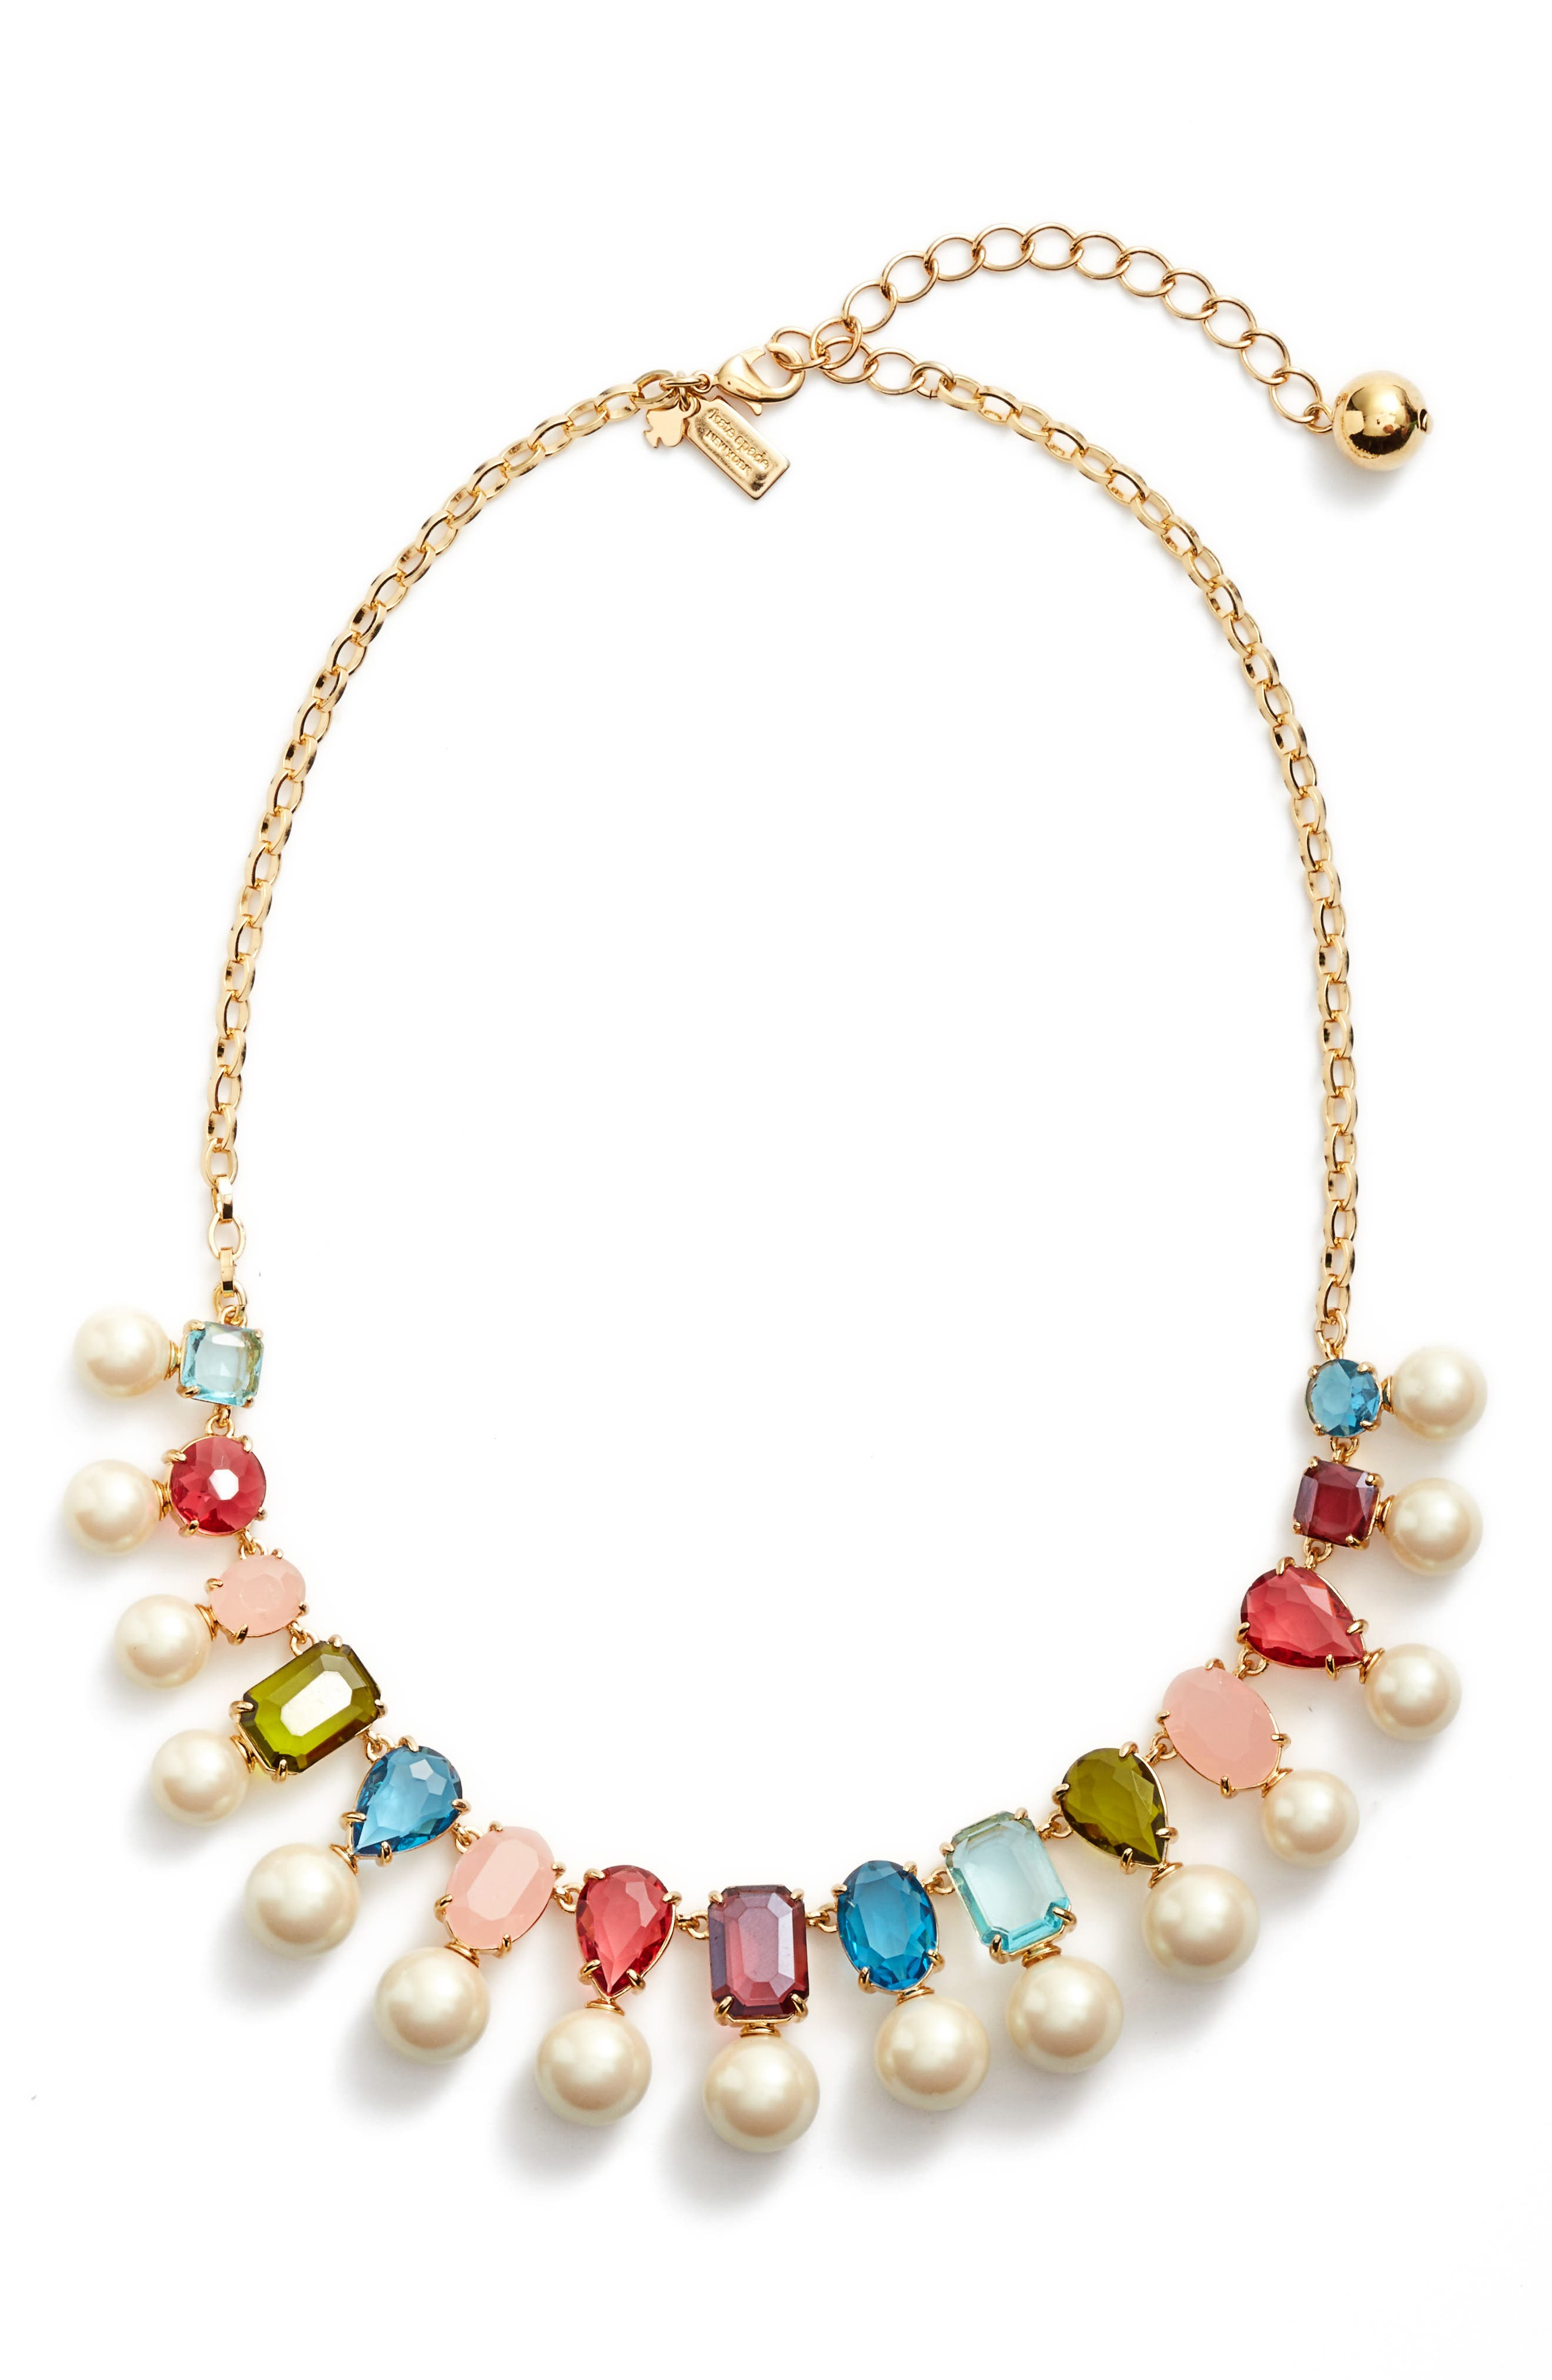 Main Image - kate spade new york a new hue collar necklace